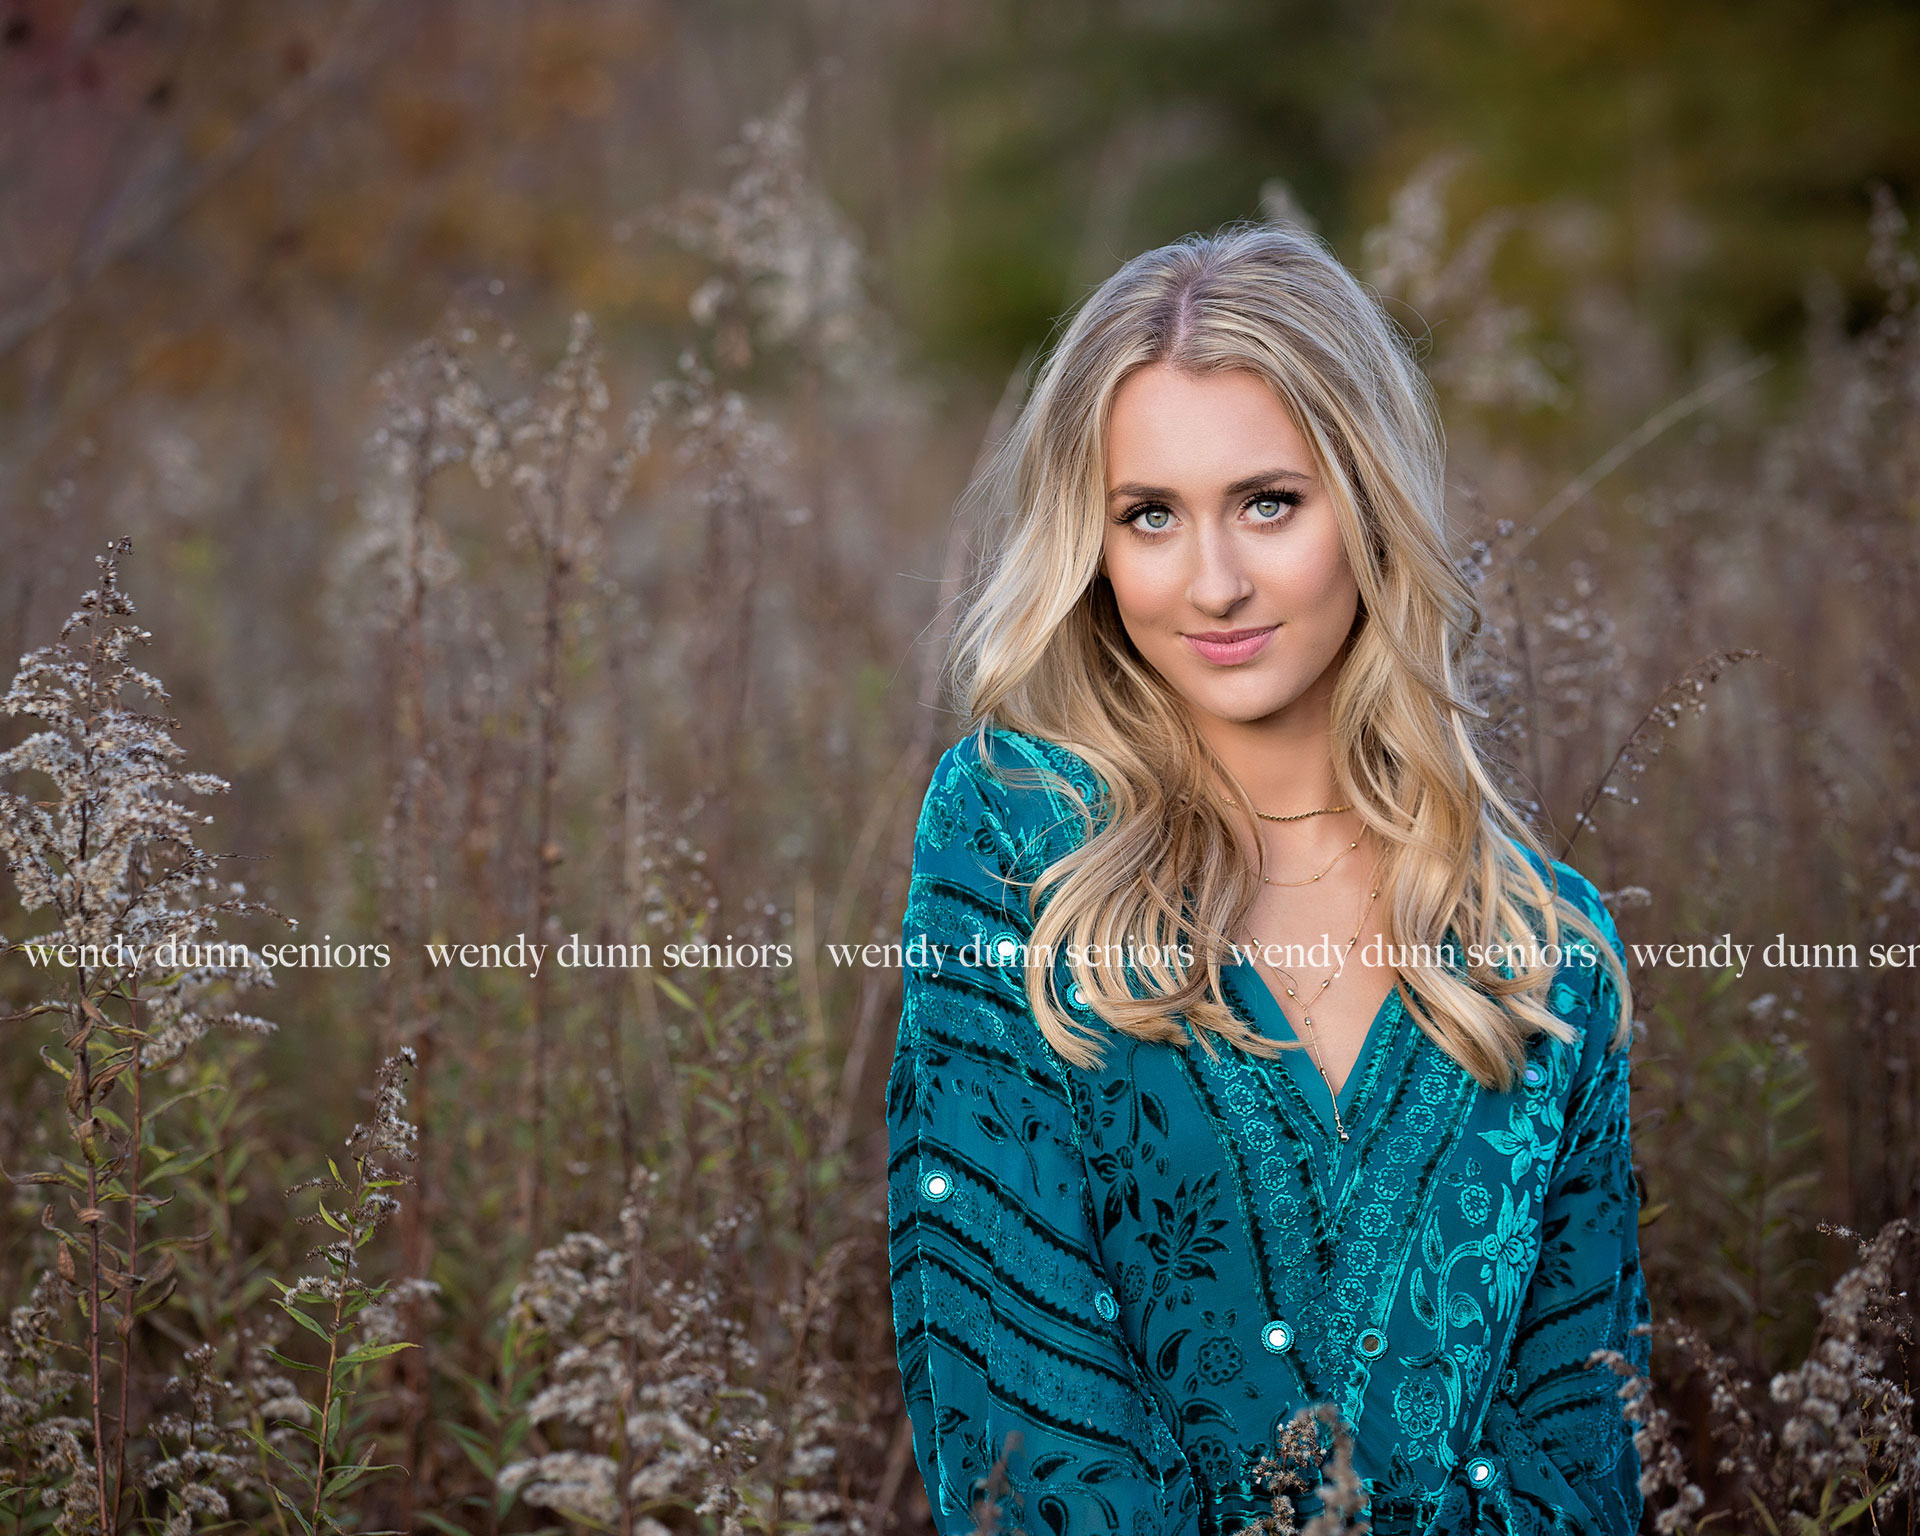 photography-poses-for-seniors